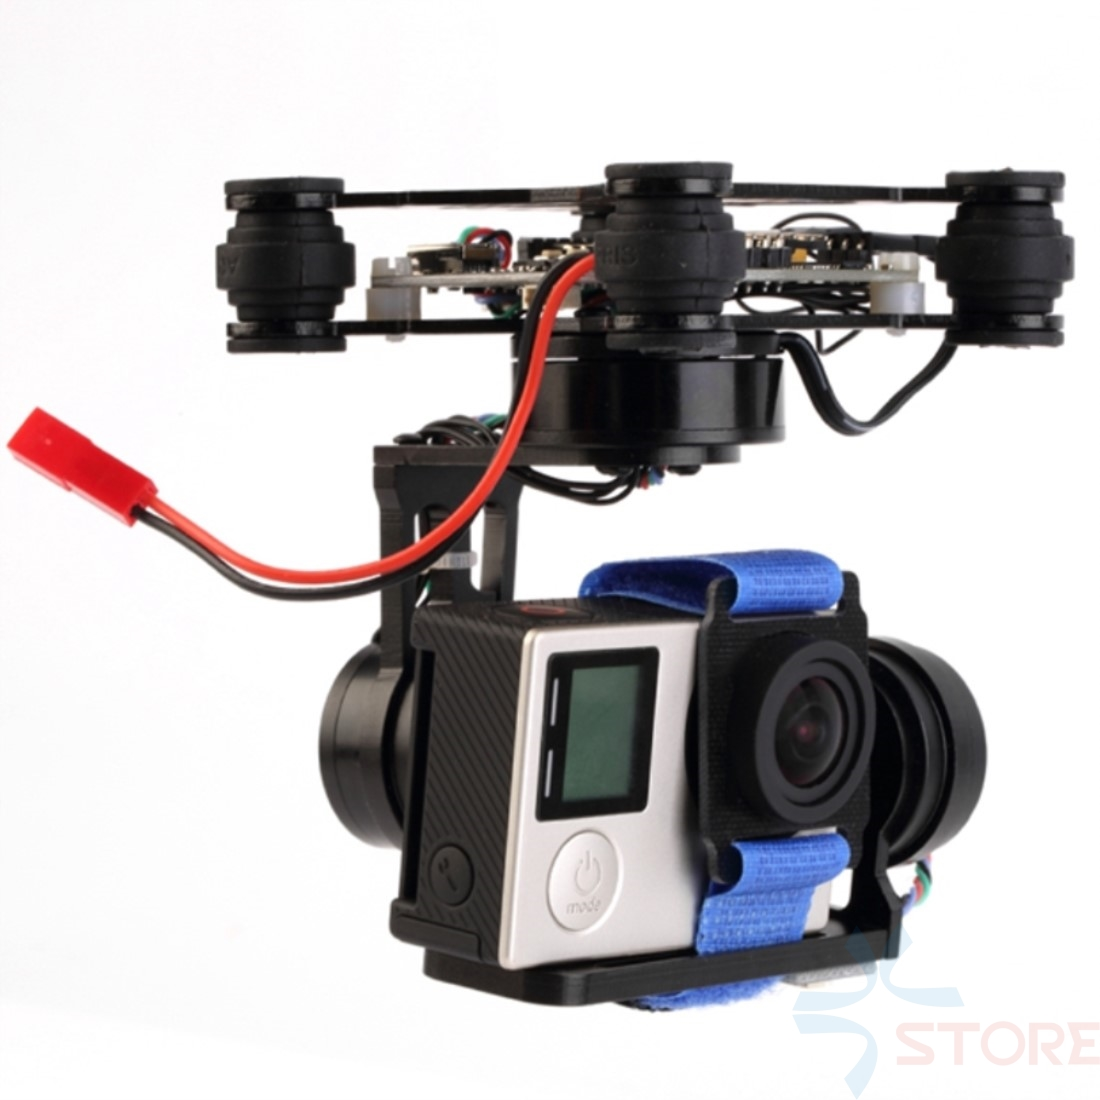 3 Axis Brushless Gimbal Frame W/Motors & Storm32 Controlller for Gopro 3 4 Xiaomi Xiaoyi SJ4000 SJCAM FPV RTF professional drone accesorries brushless gimbal frame 2 motors controller for dji phantom gopro 4 3 3 fpv 6a30 drop shipping